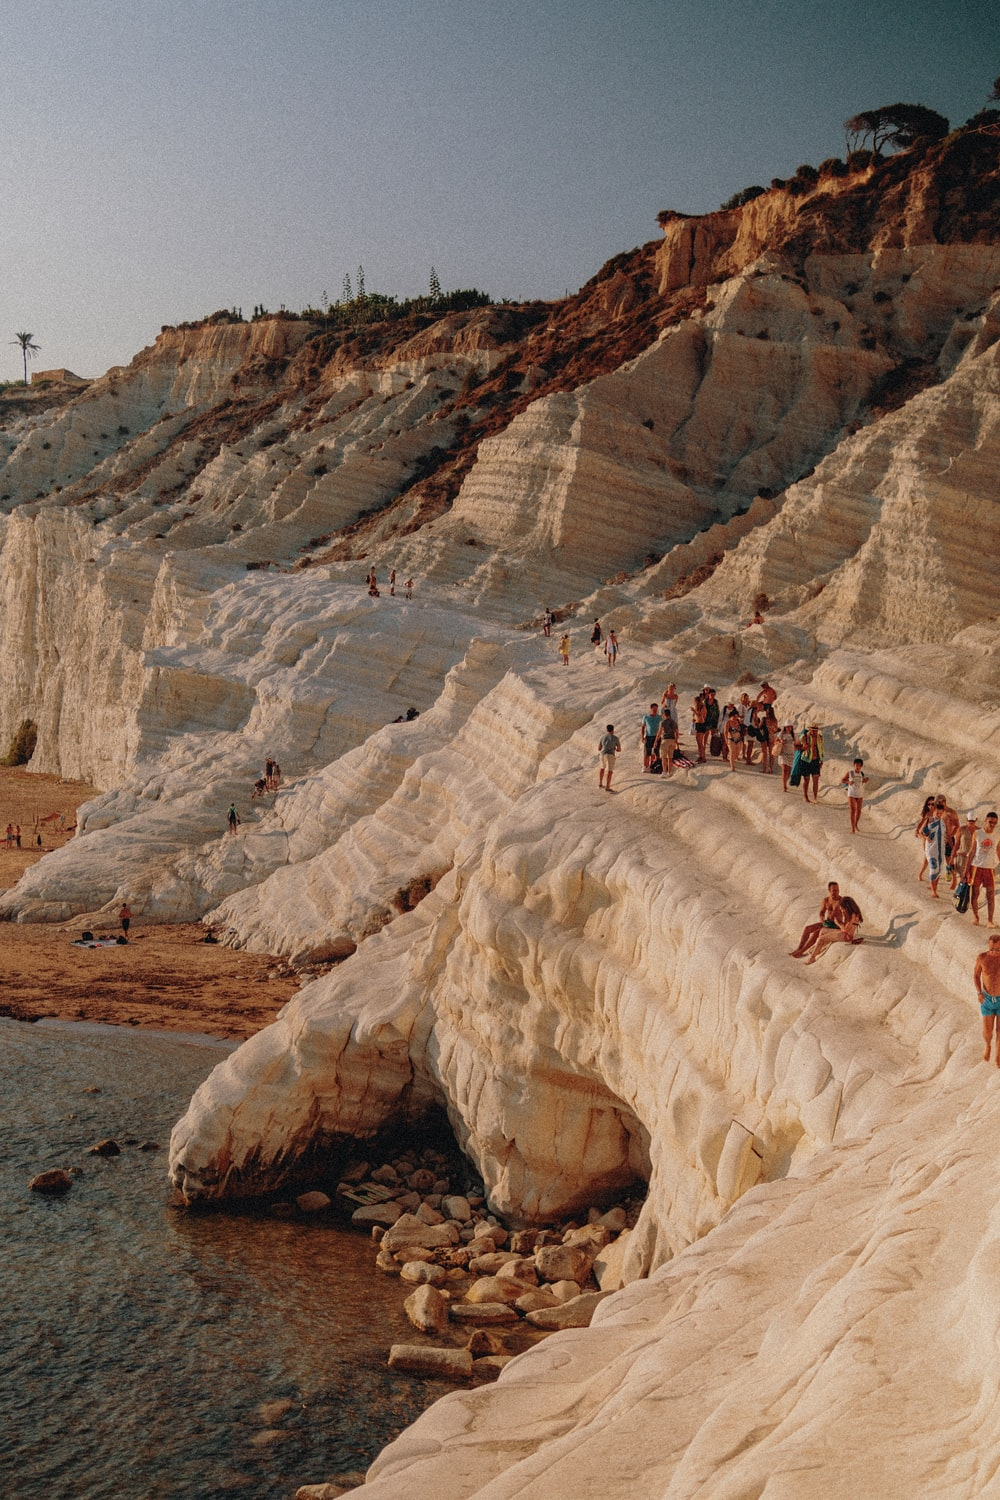 people in a rock formation near body of water during daytime